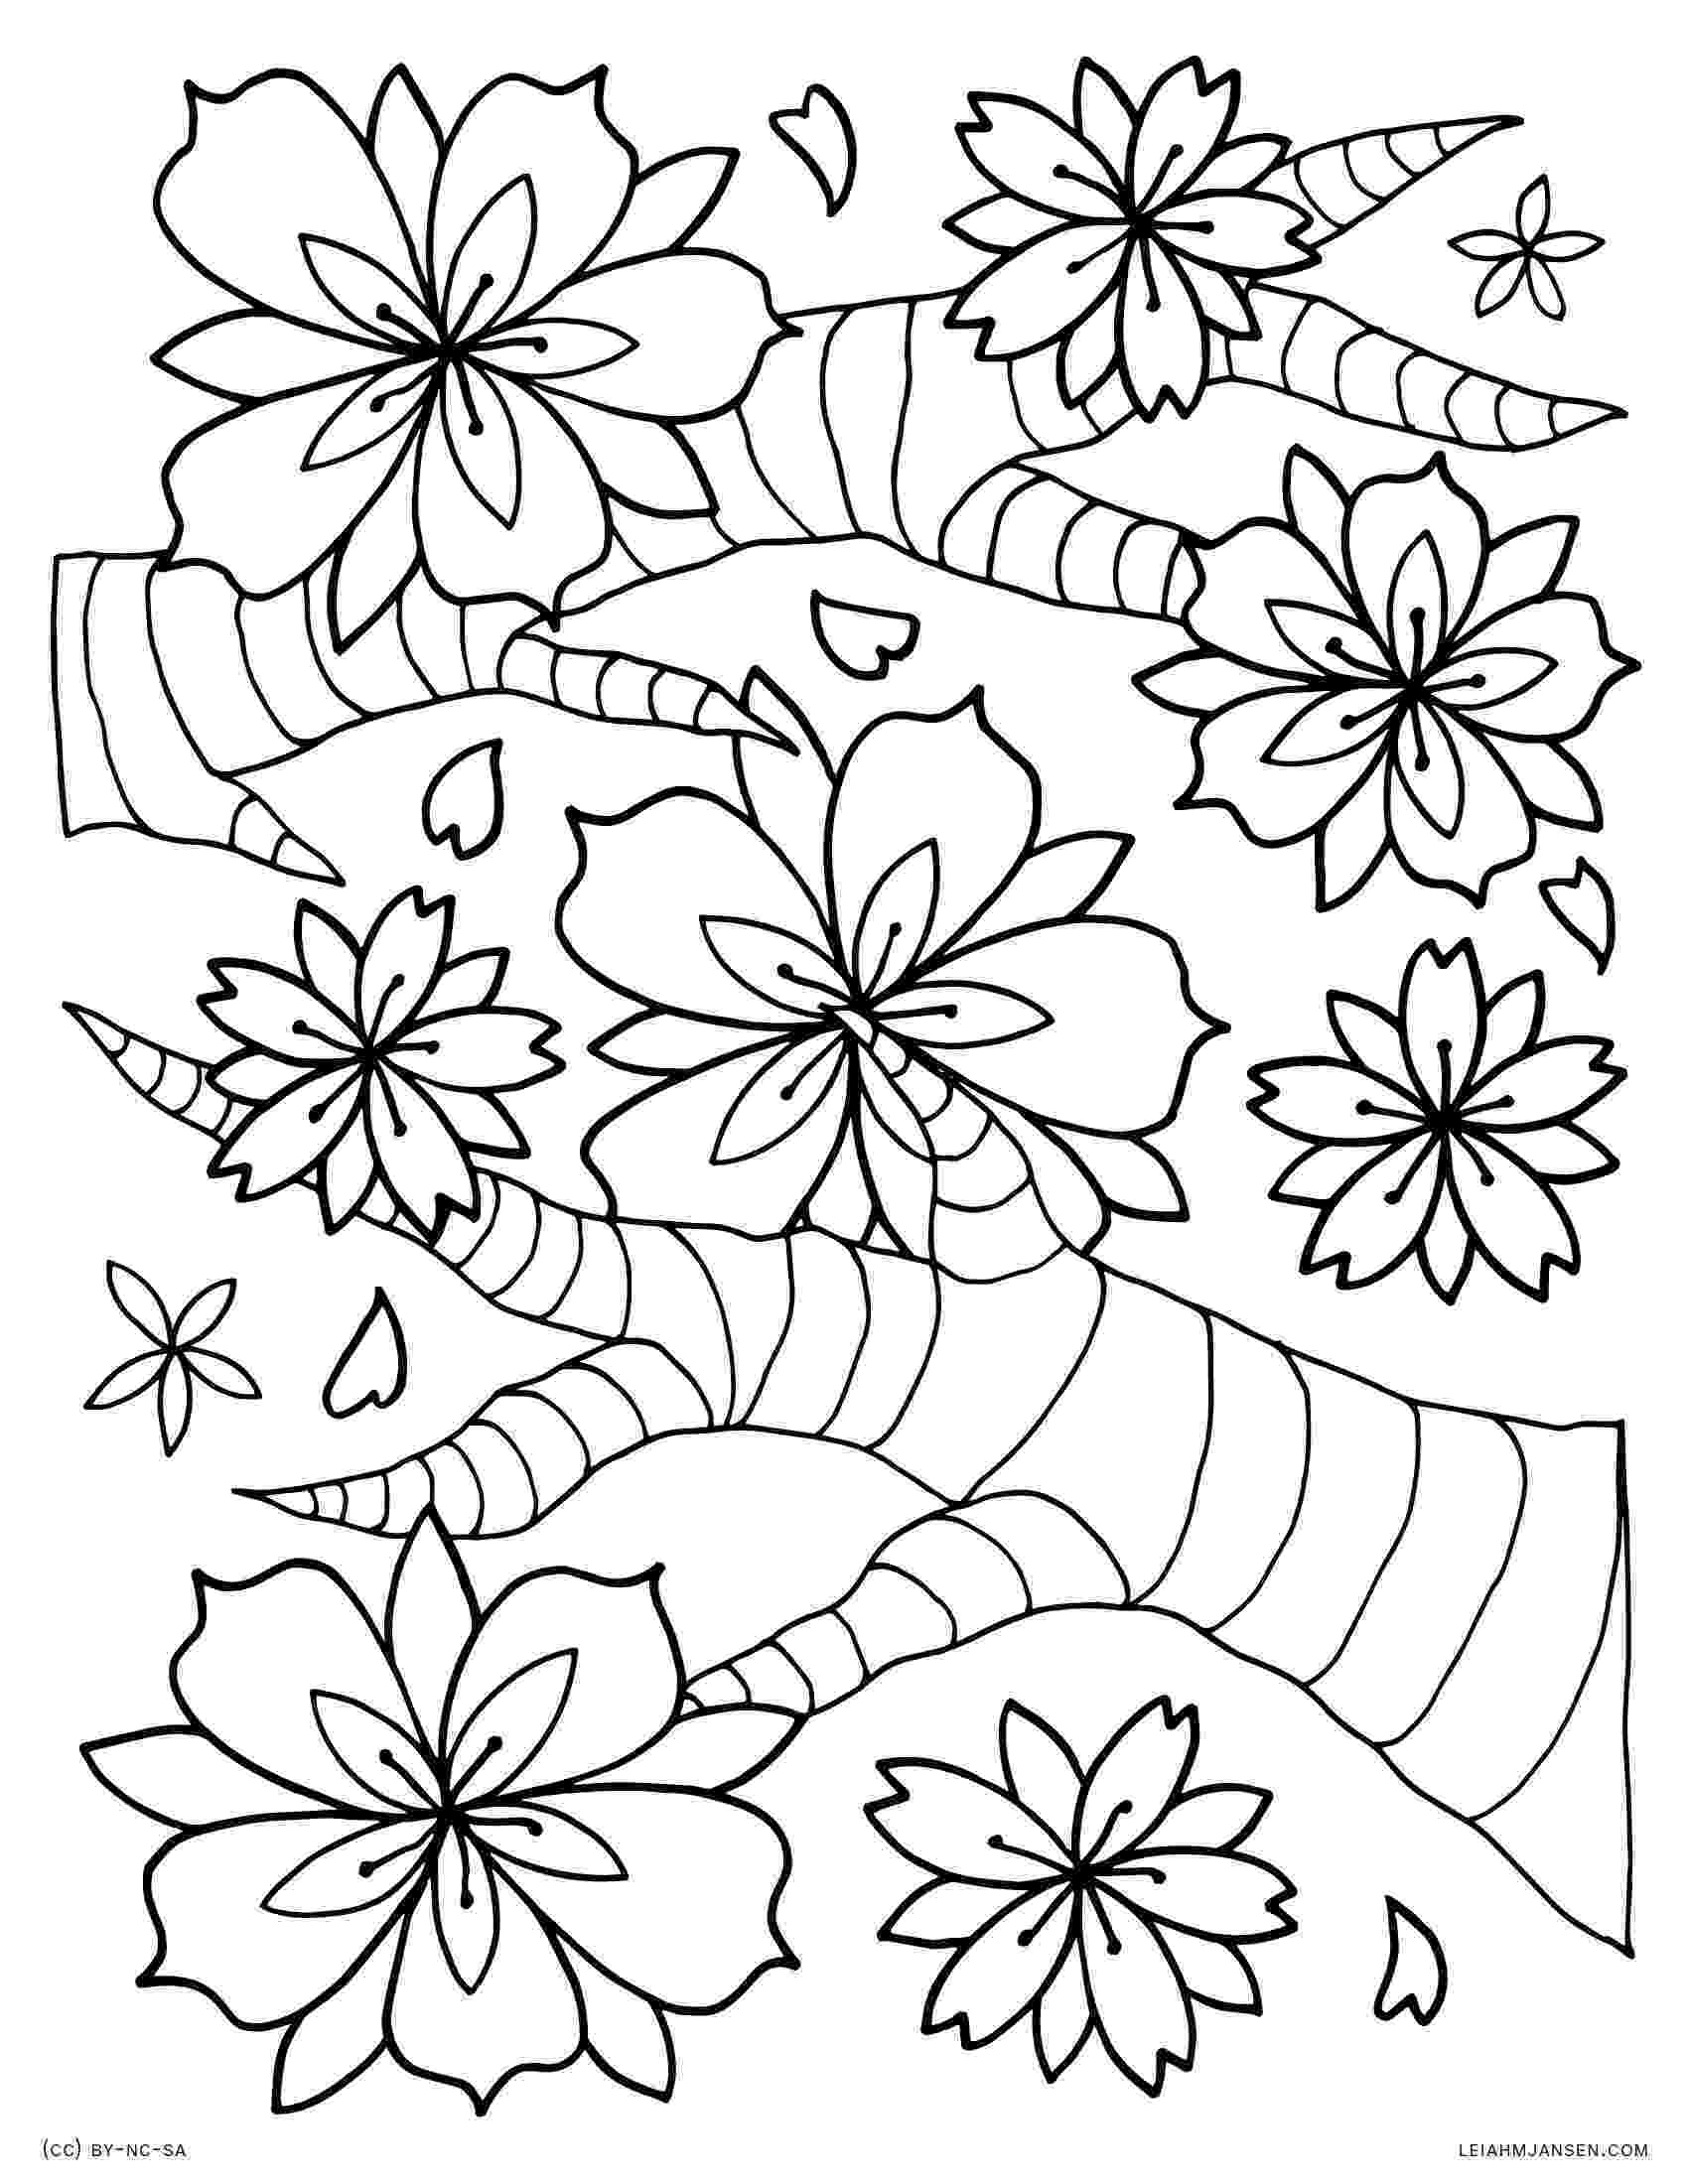 cherry blossom coloring pages coloring pages pages blossom coloring cherry